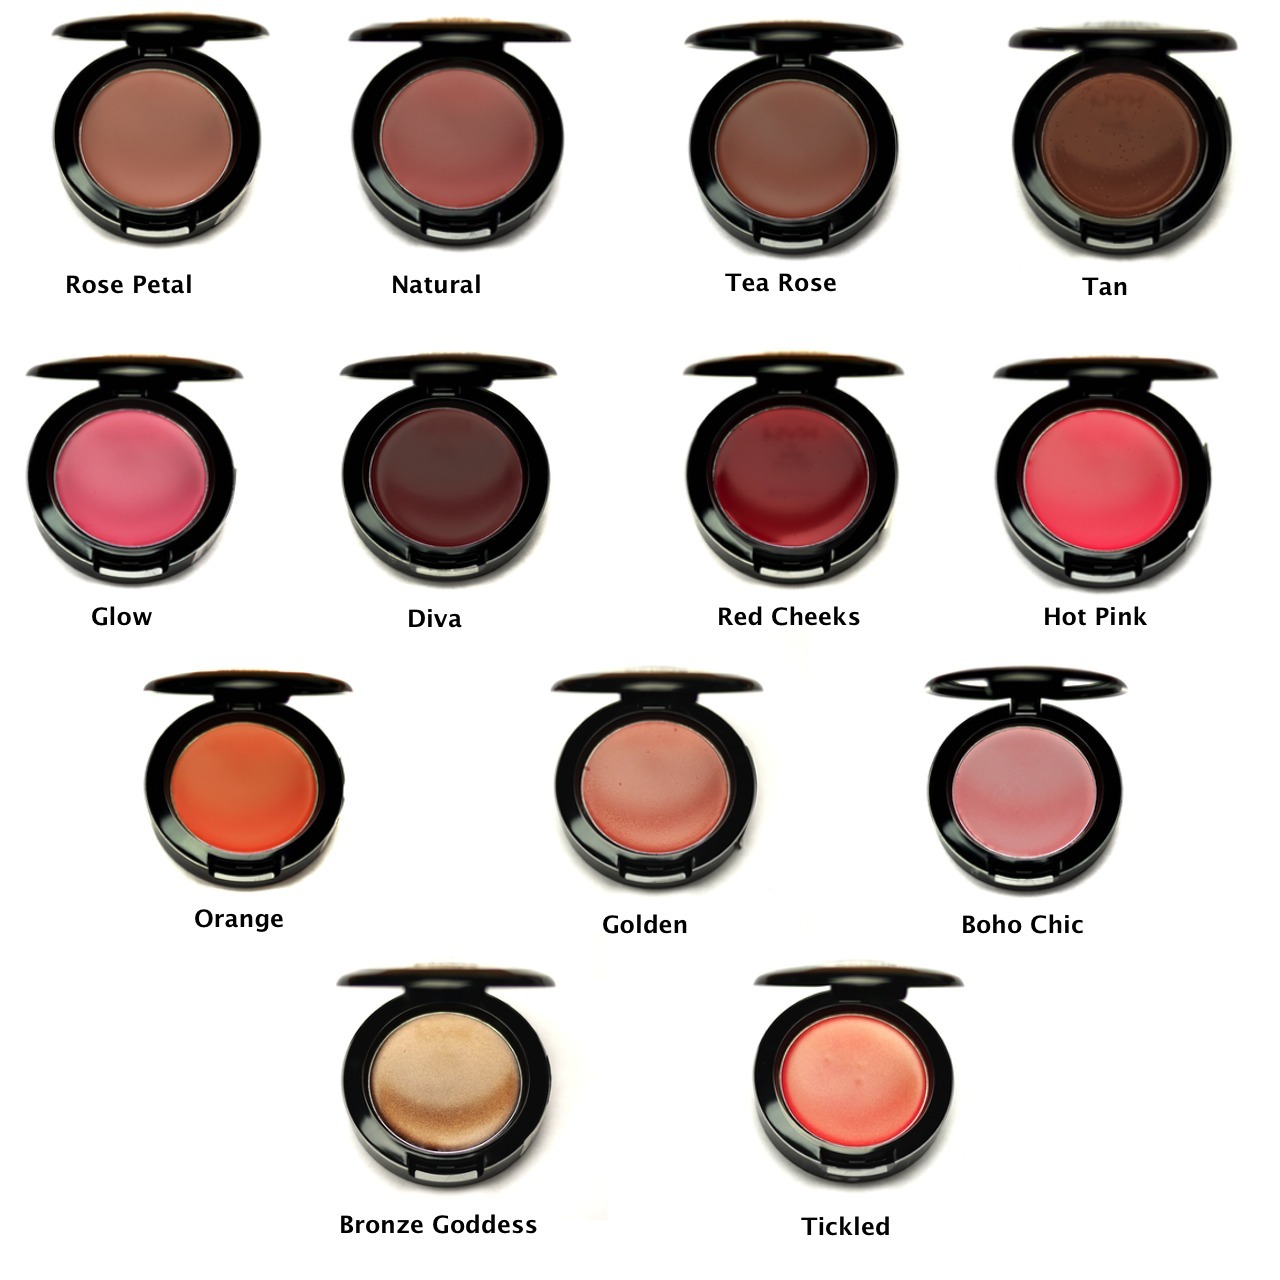 DOconsider the intensity of your blush with your skin tone. If you have fair to light skin, then pale pink, rose, or peach blush shades are more flattering than deep berry or plum shades, which can make your cheek area look bruised. In contrast, women with medium to tan skin tones can look gorgeous with berry or plum-hued blush, and also can opt for russet, or even mahogany shades.